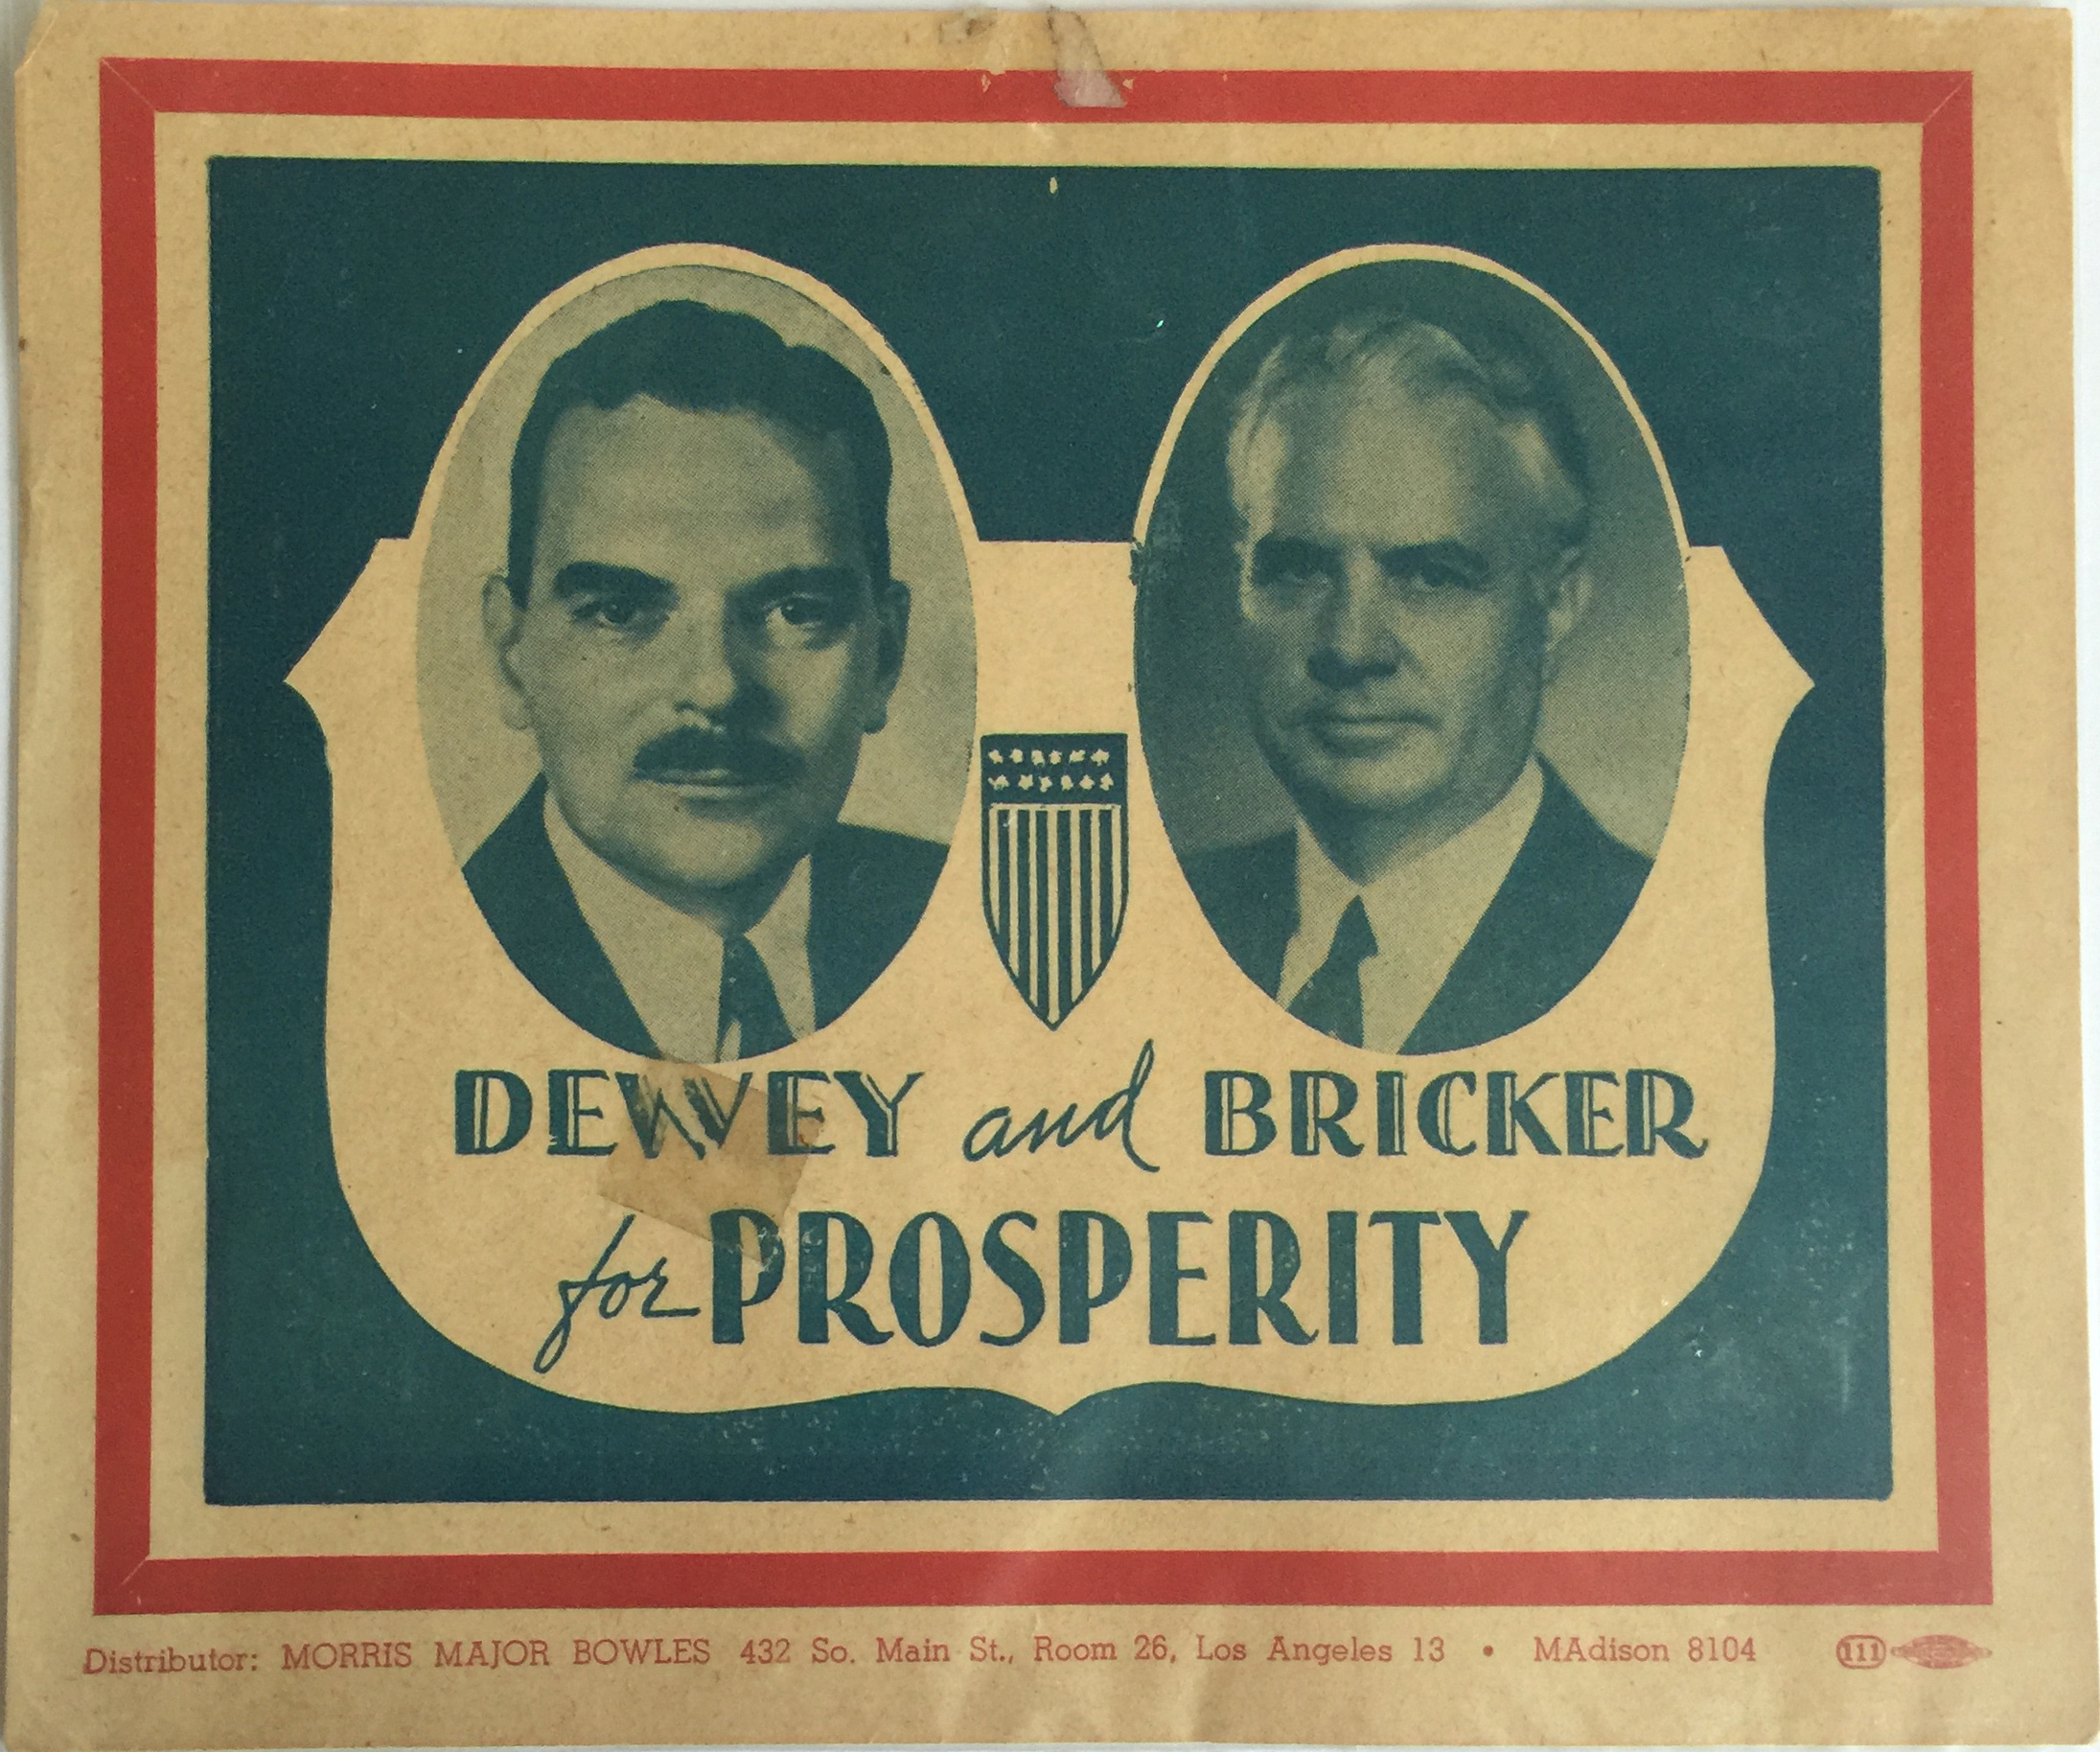 STICKER-pres1944 DEWEY BRICKER 5.jpg